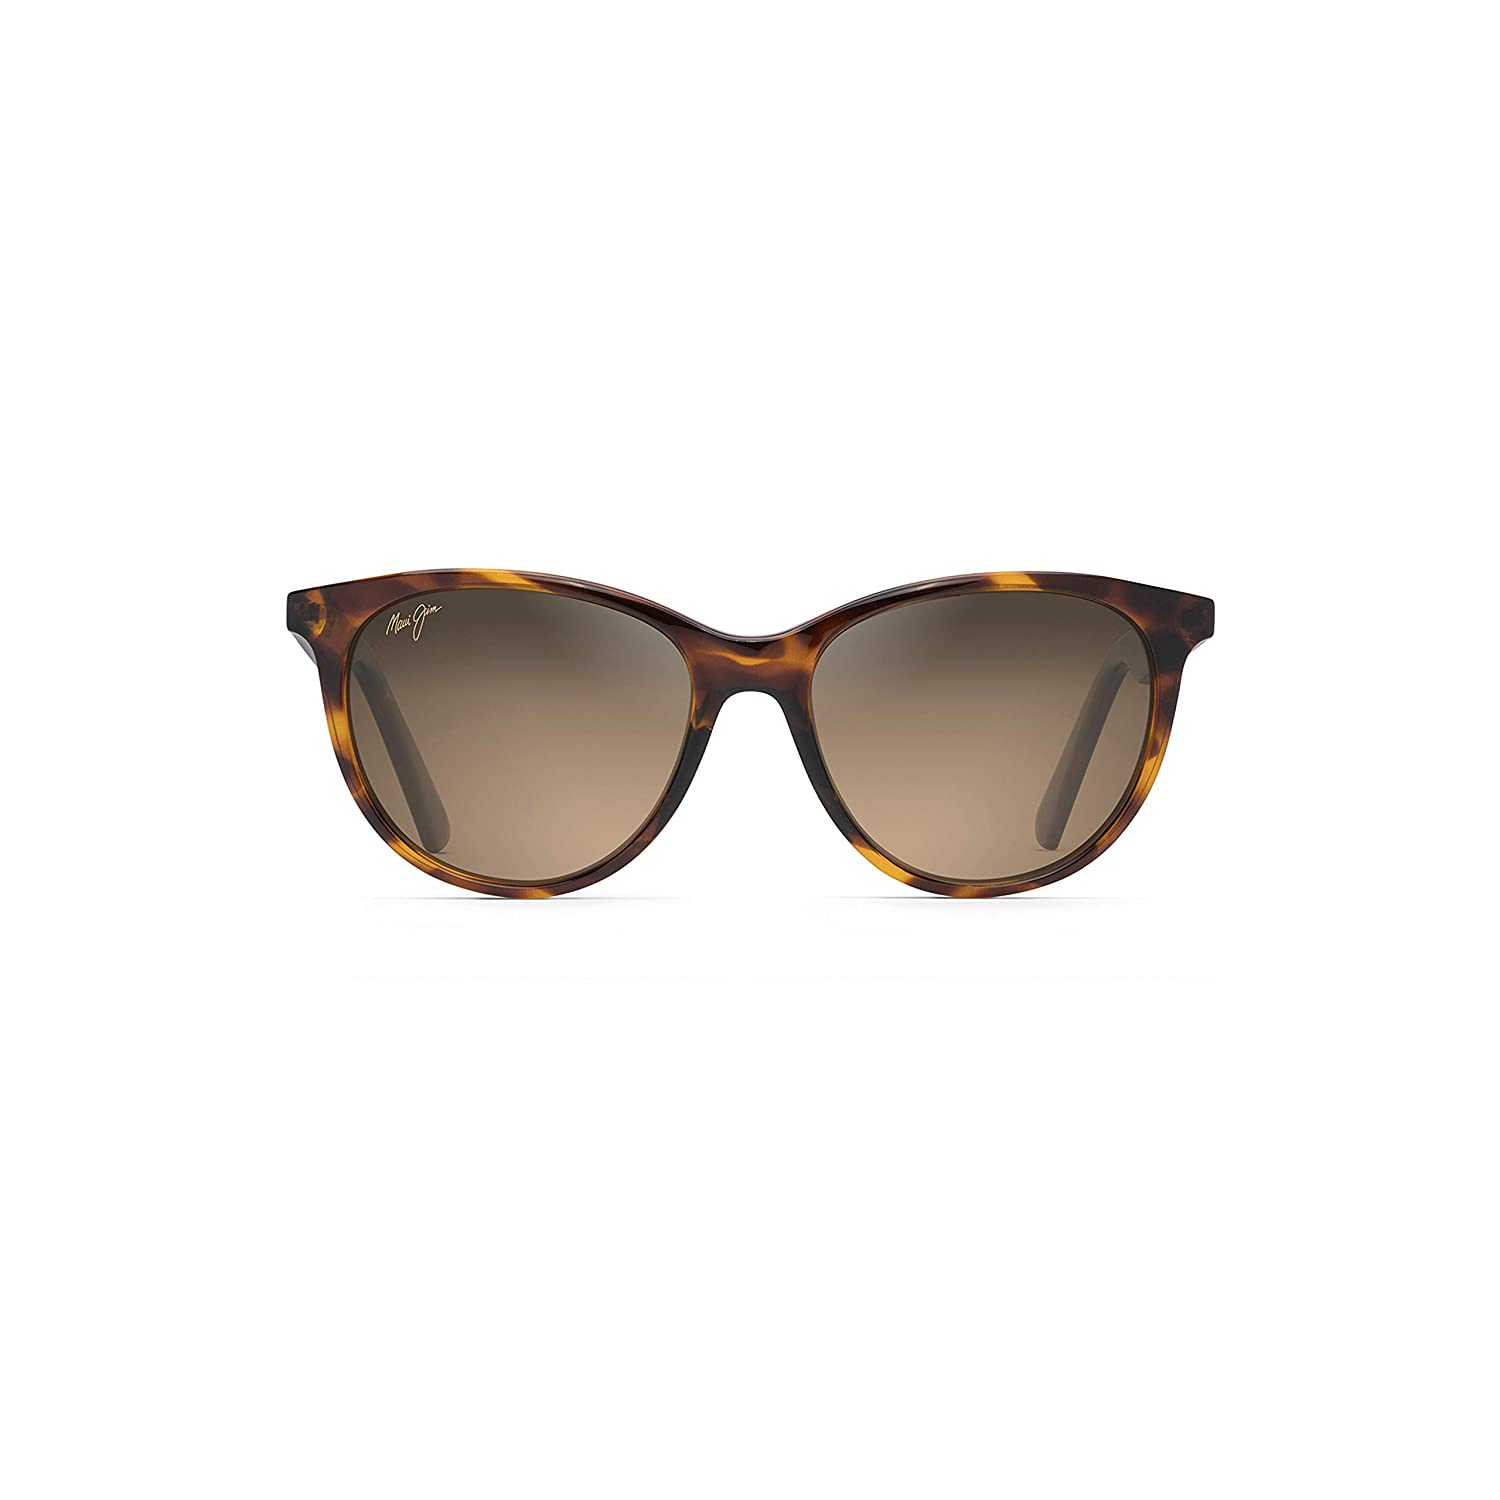 Maui Jim Womens Cathedrals Hawaii Lenses with with Patented PolarizedPlus2 Lens Technology B782-03S